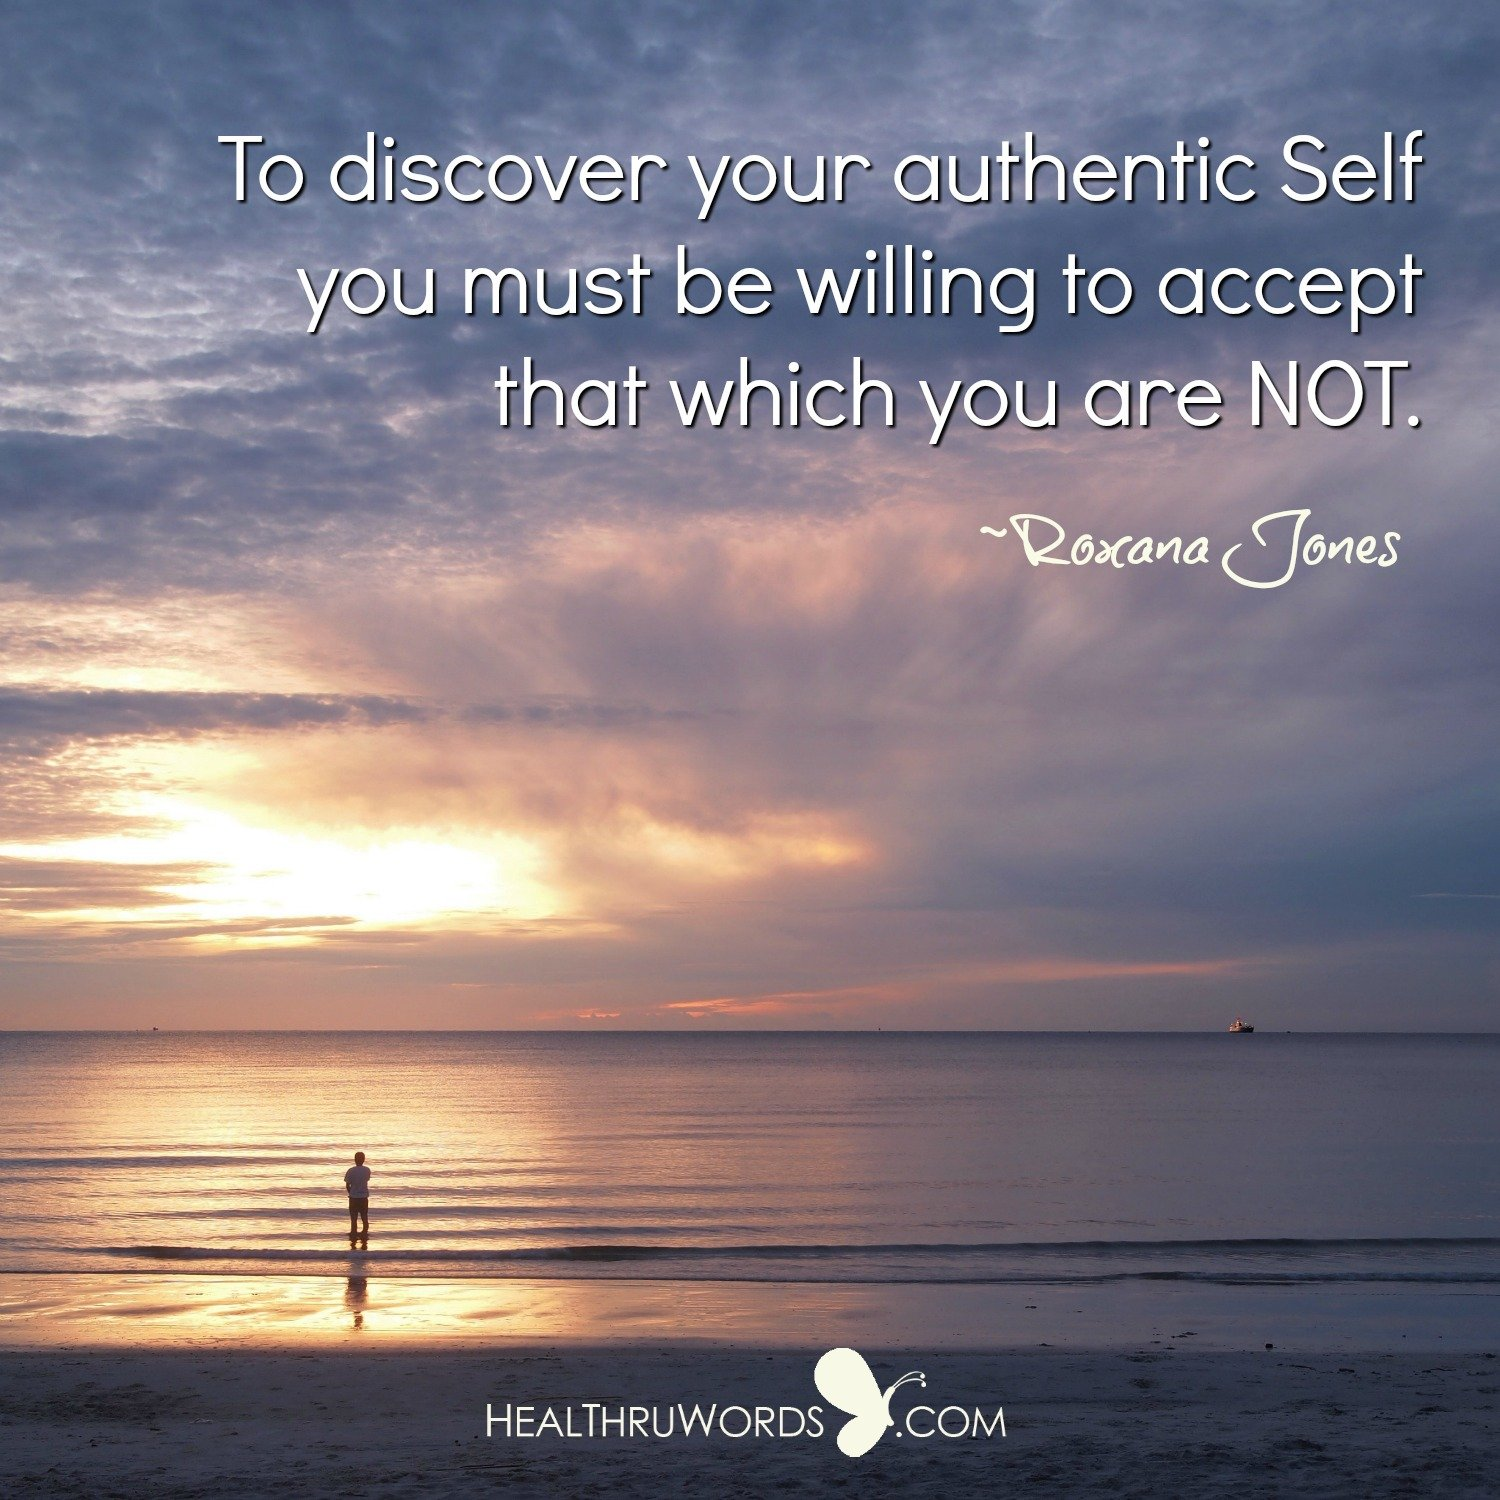 Inspirational Image: Knowing Yourself